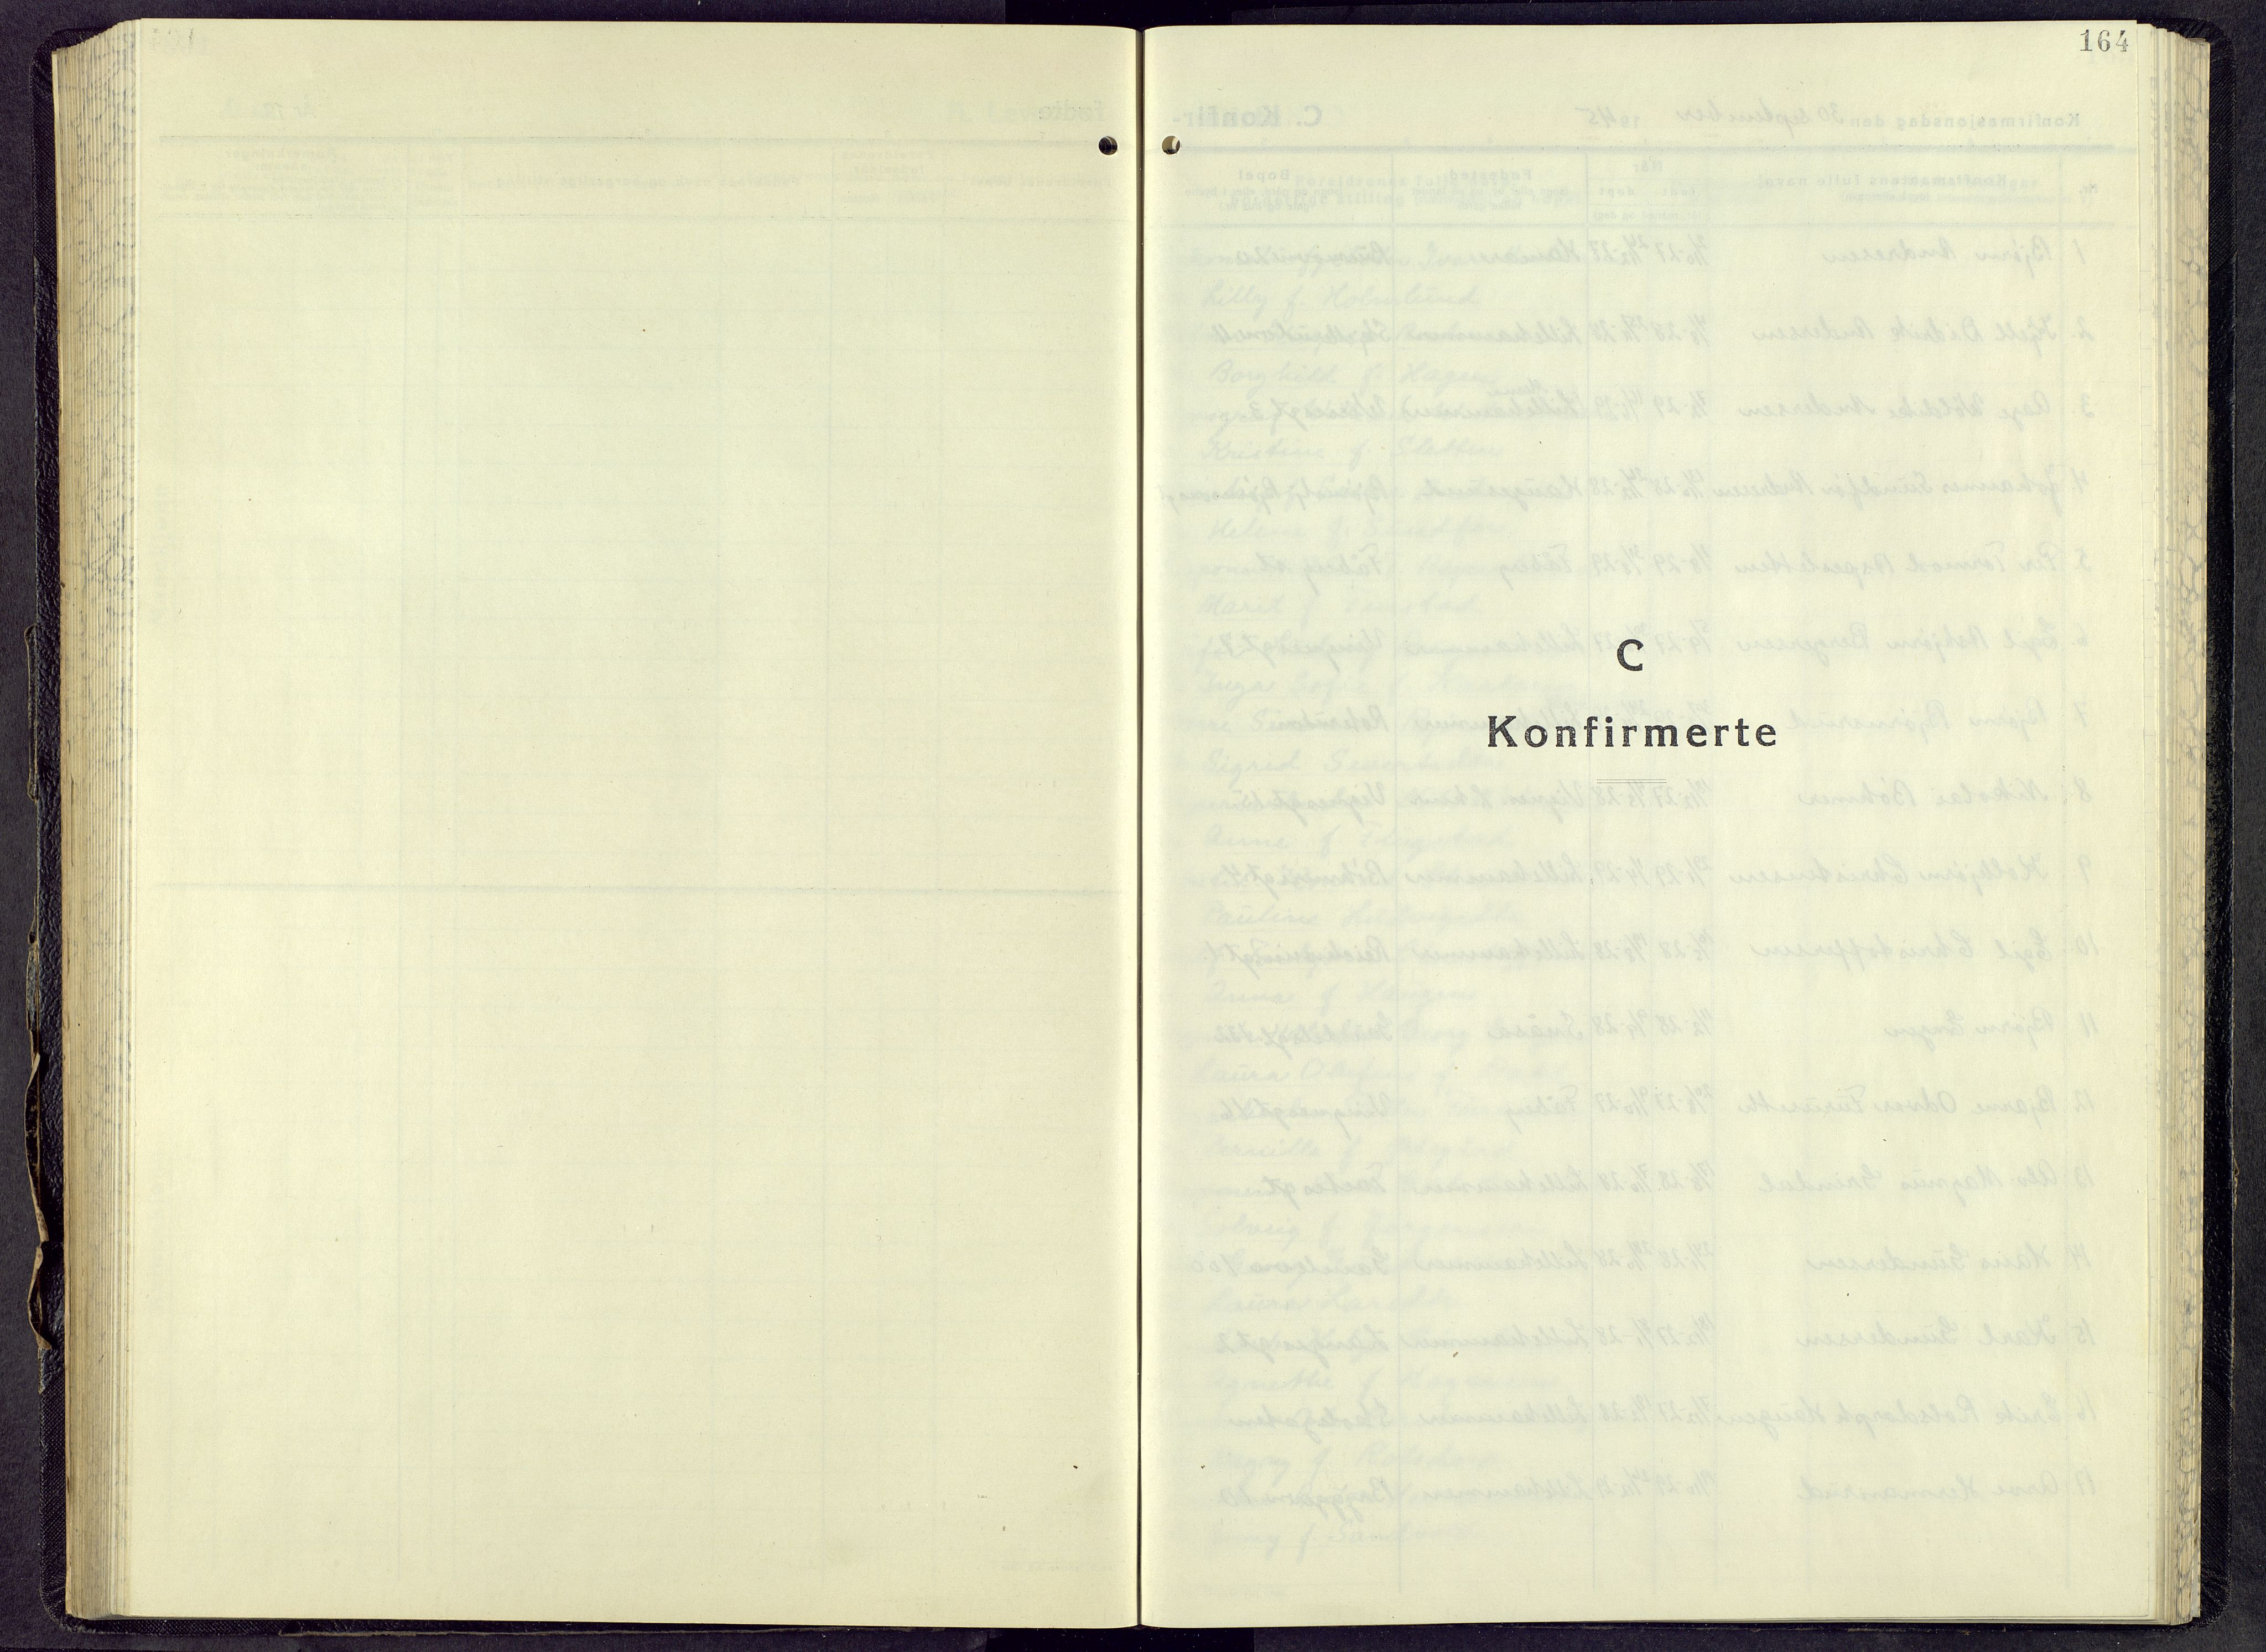 SAH, Lillehammer prestekontor, H/Ha/Hab/L0005: Parish register (copy) no. 5, 1943-1955, p. 164